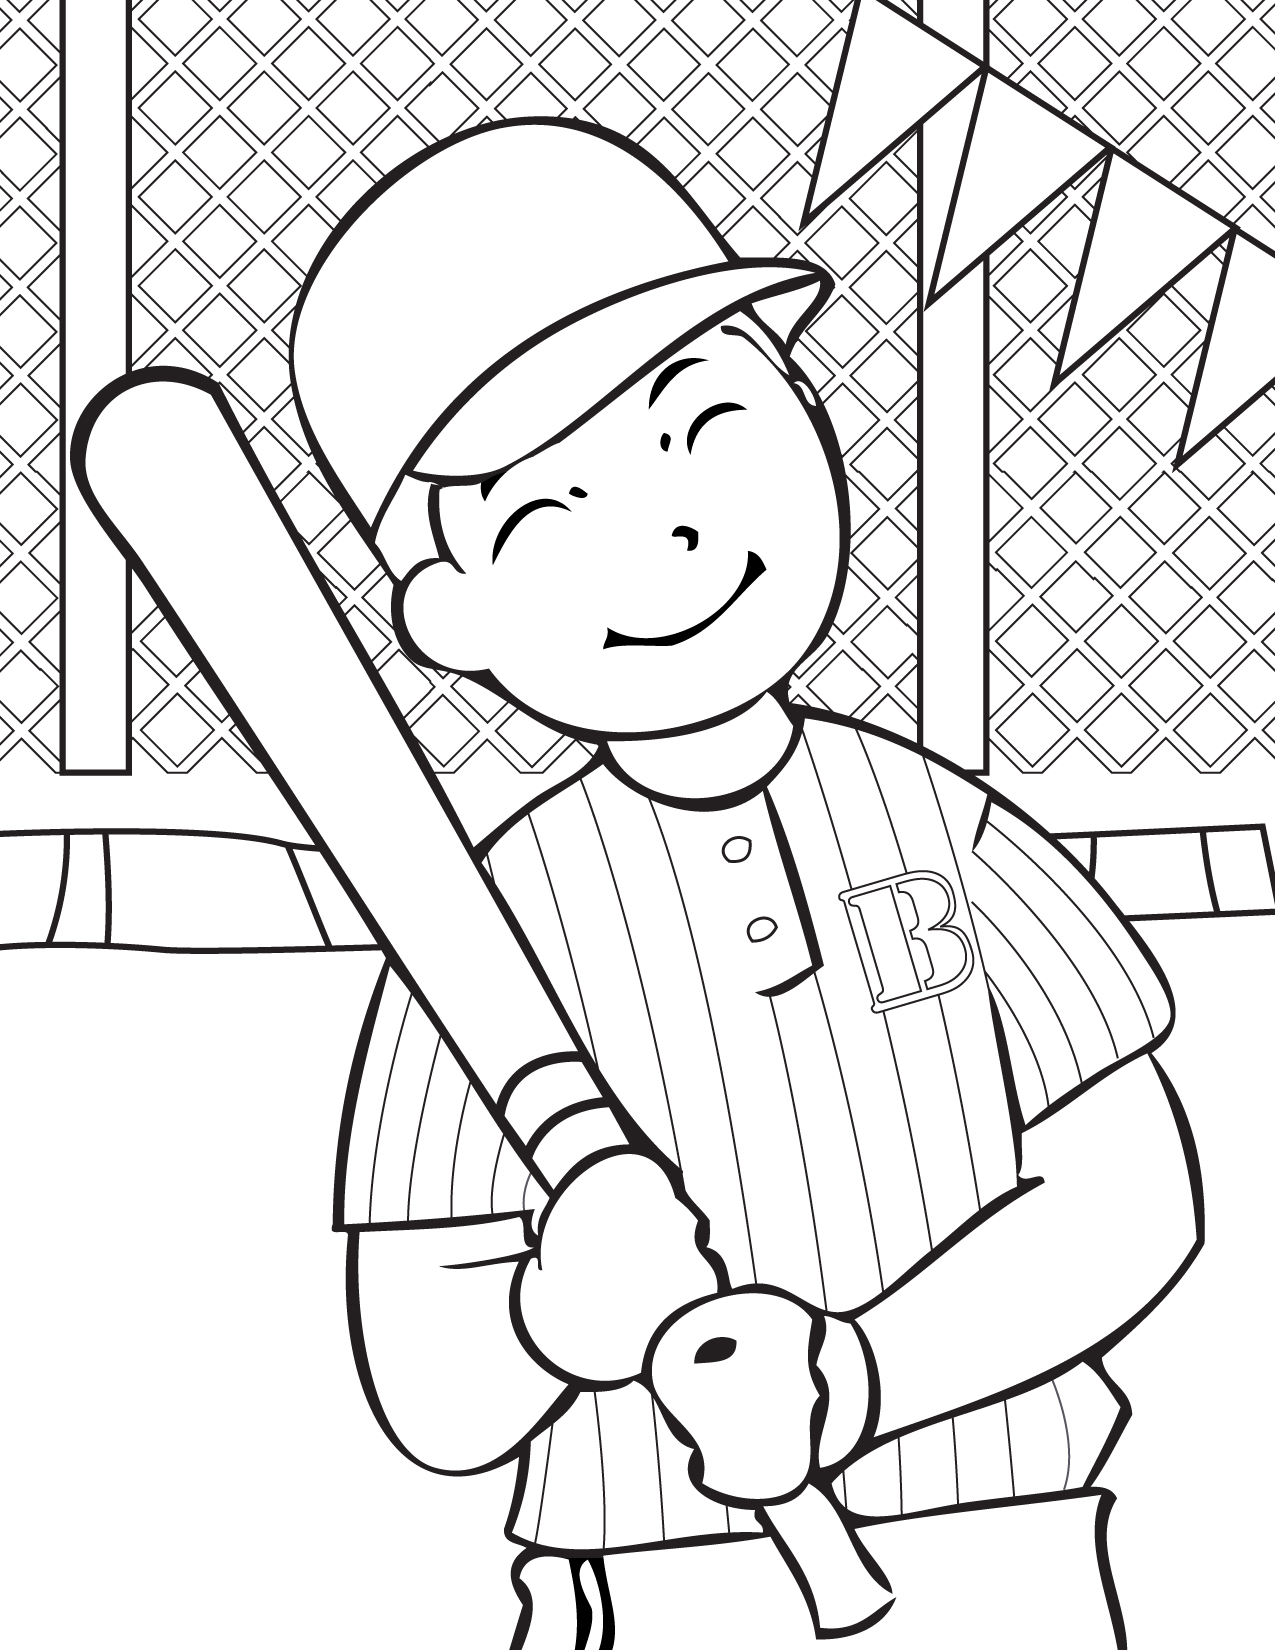 coloring pages toddler free printable baseball coloring pages for kids best